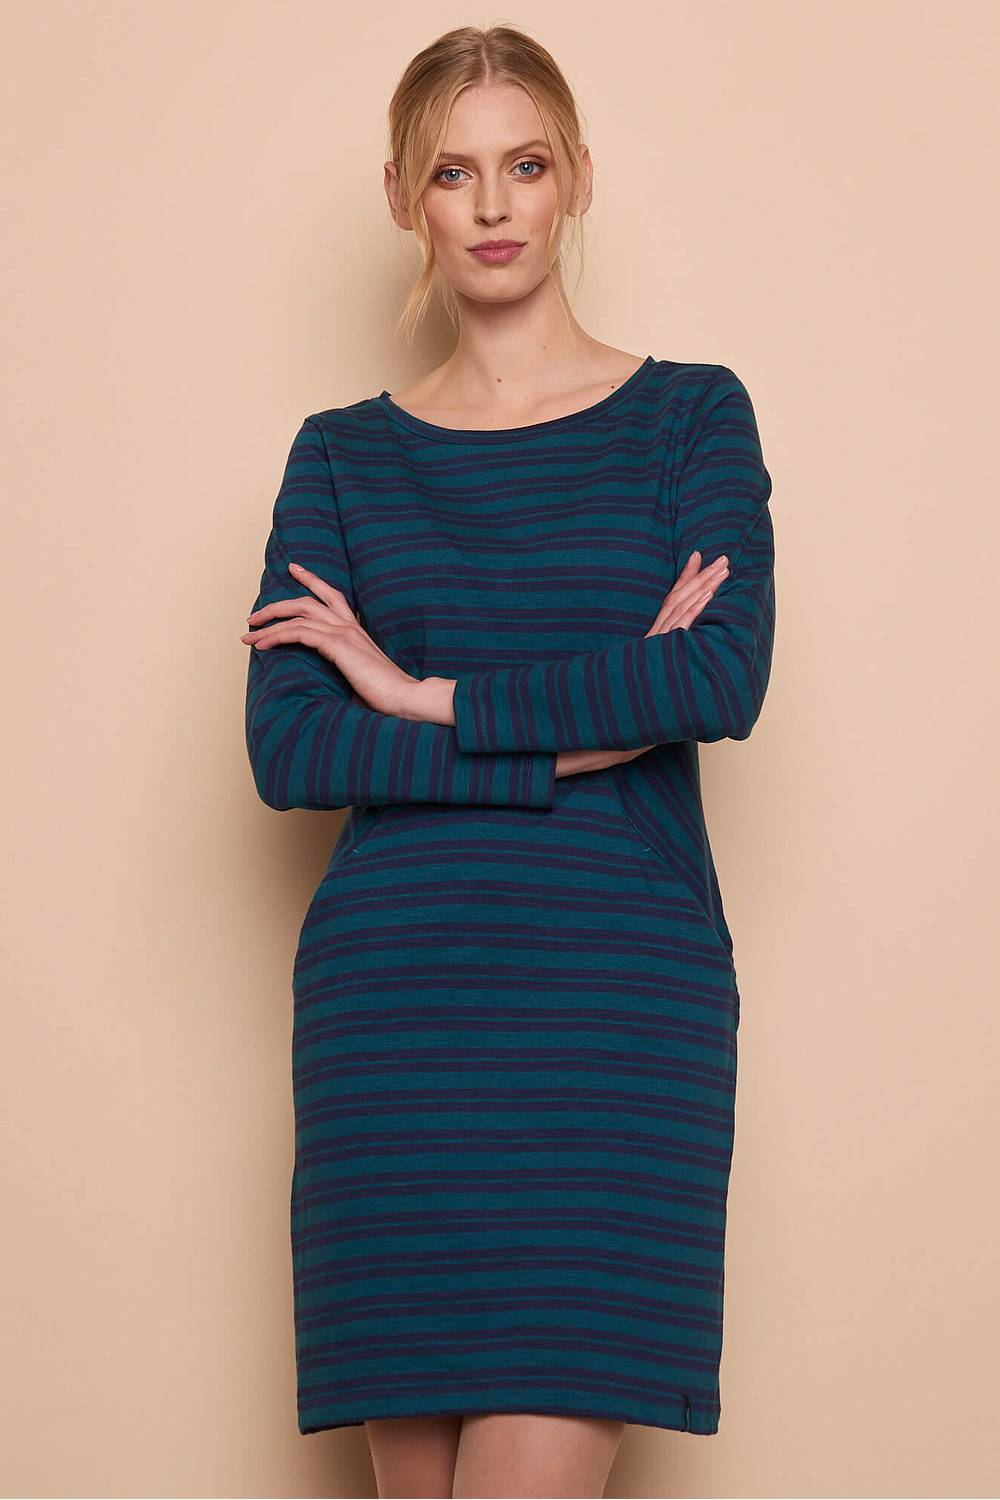 Heavy Slub Dress ALBA pine stripes